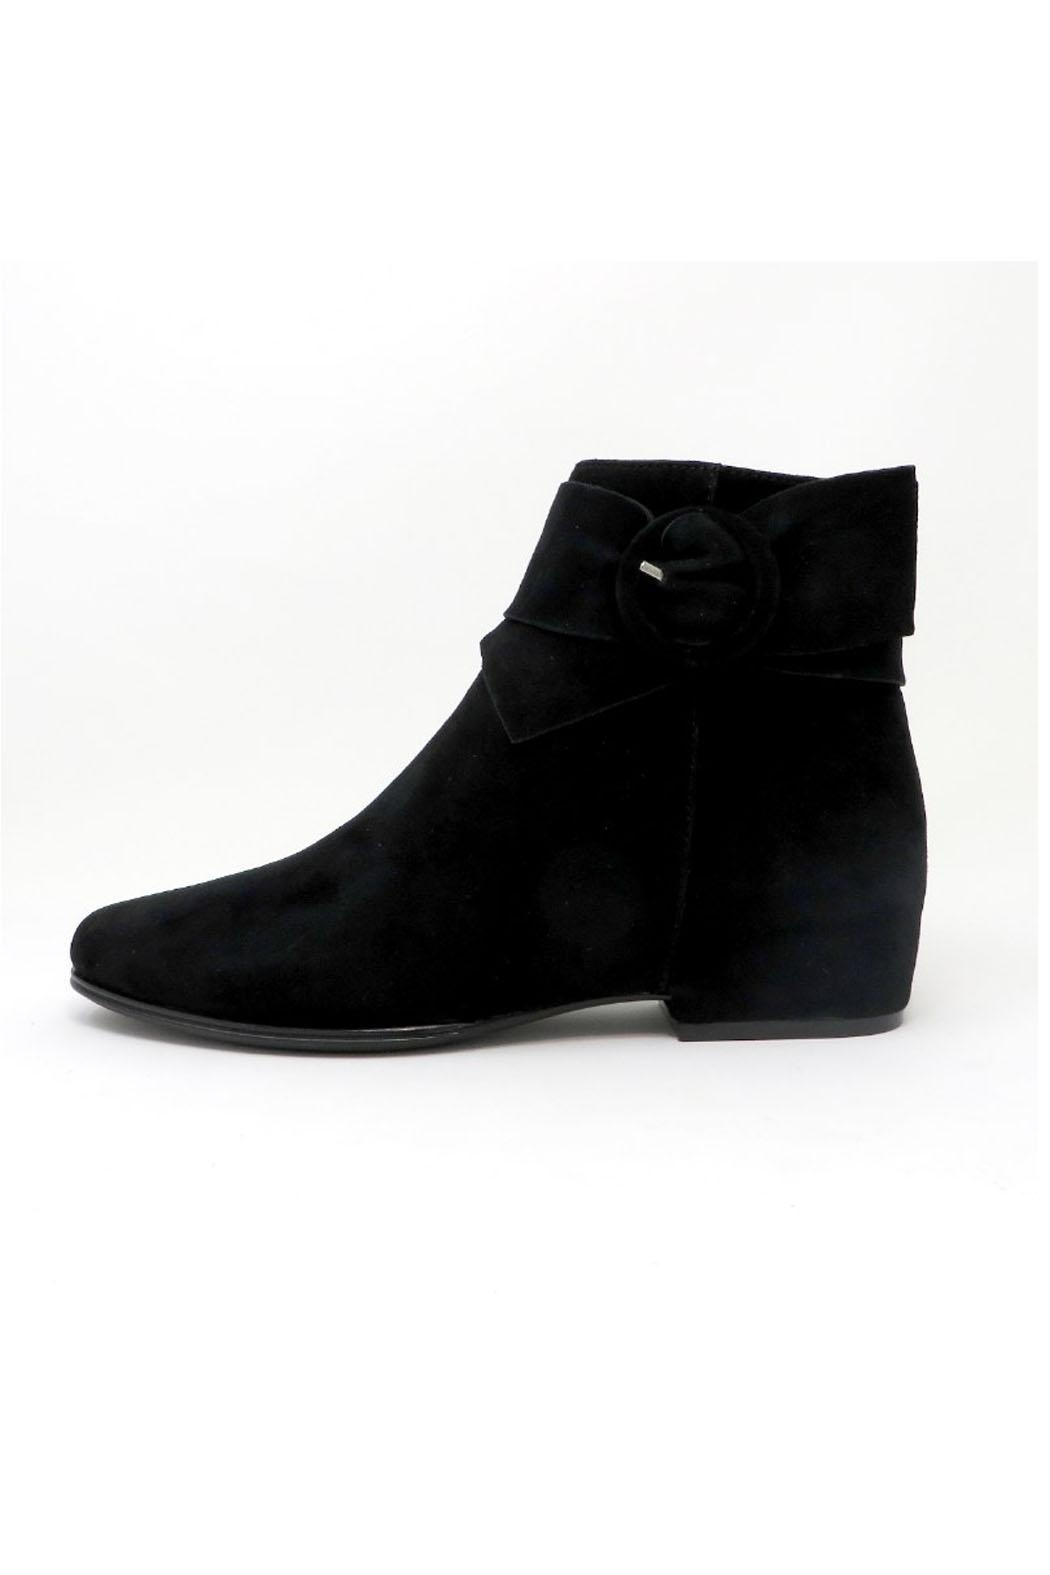 Vaneli Black Suede Bootie - Front Cropped Image